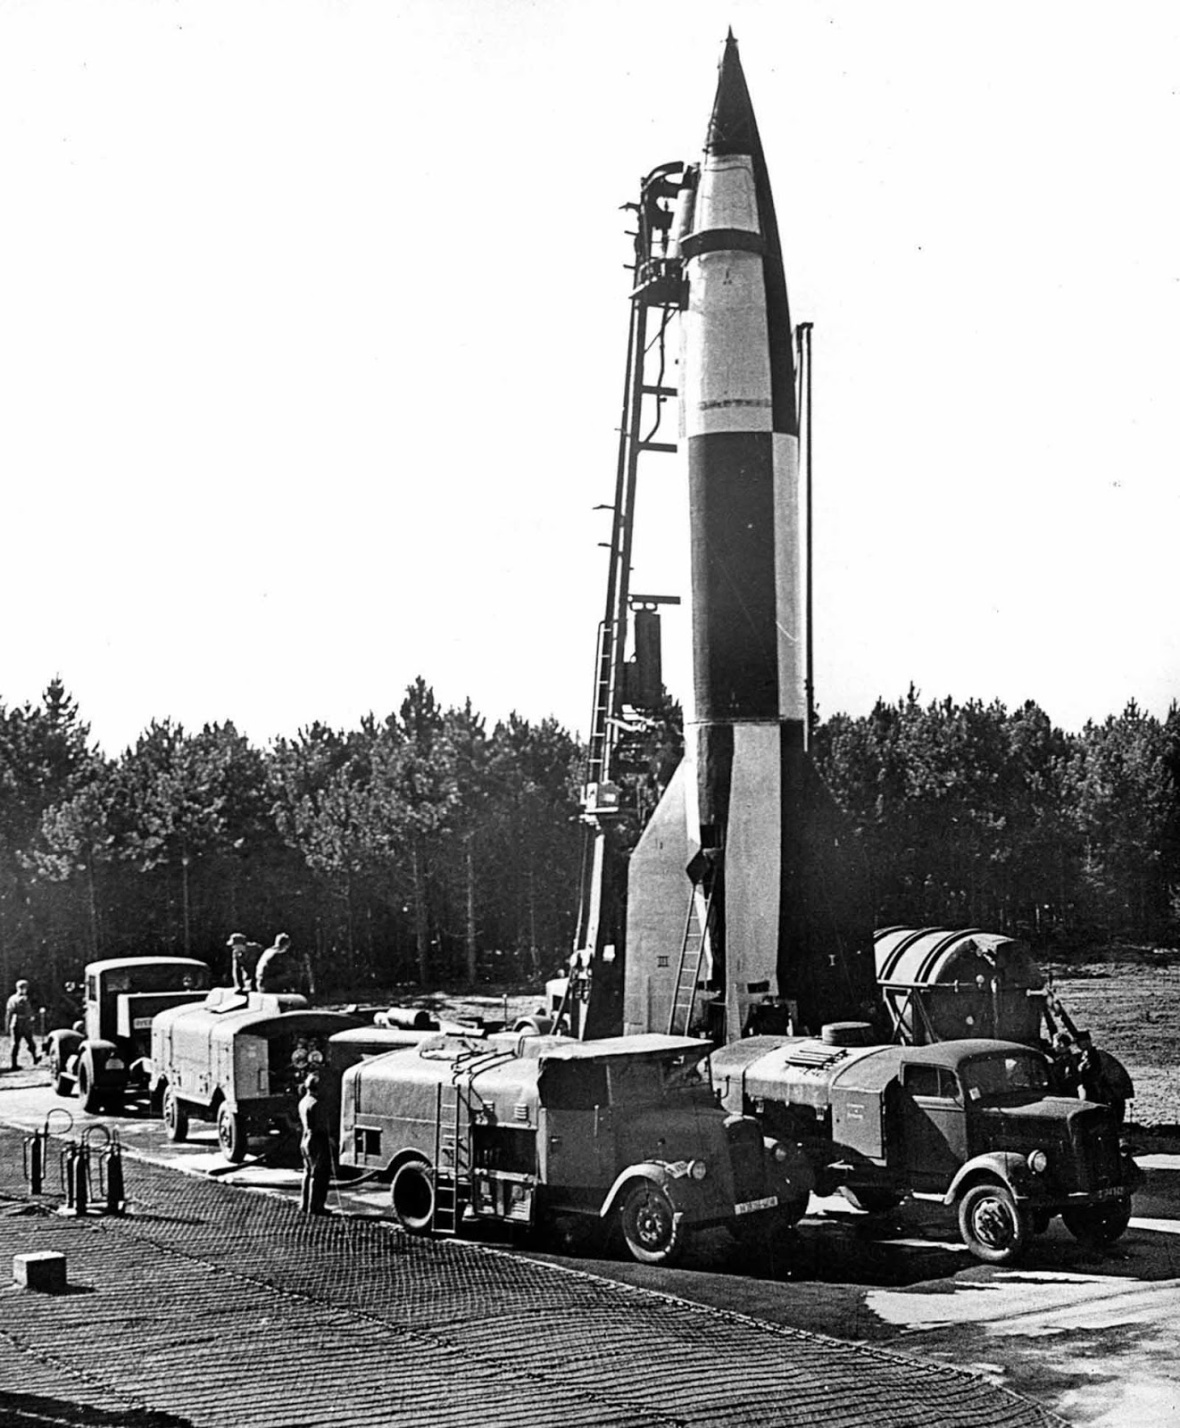 A V-2 rocket is prepared for launch in Cuxhaven, Germany. 1944.